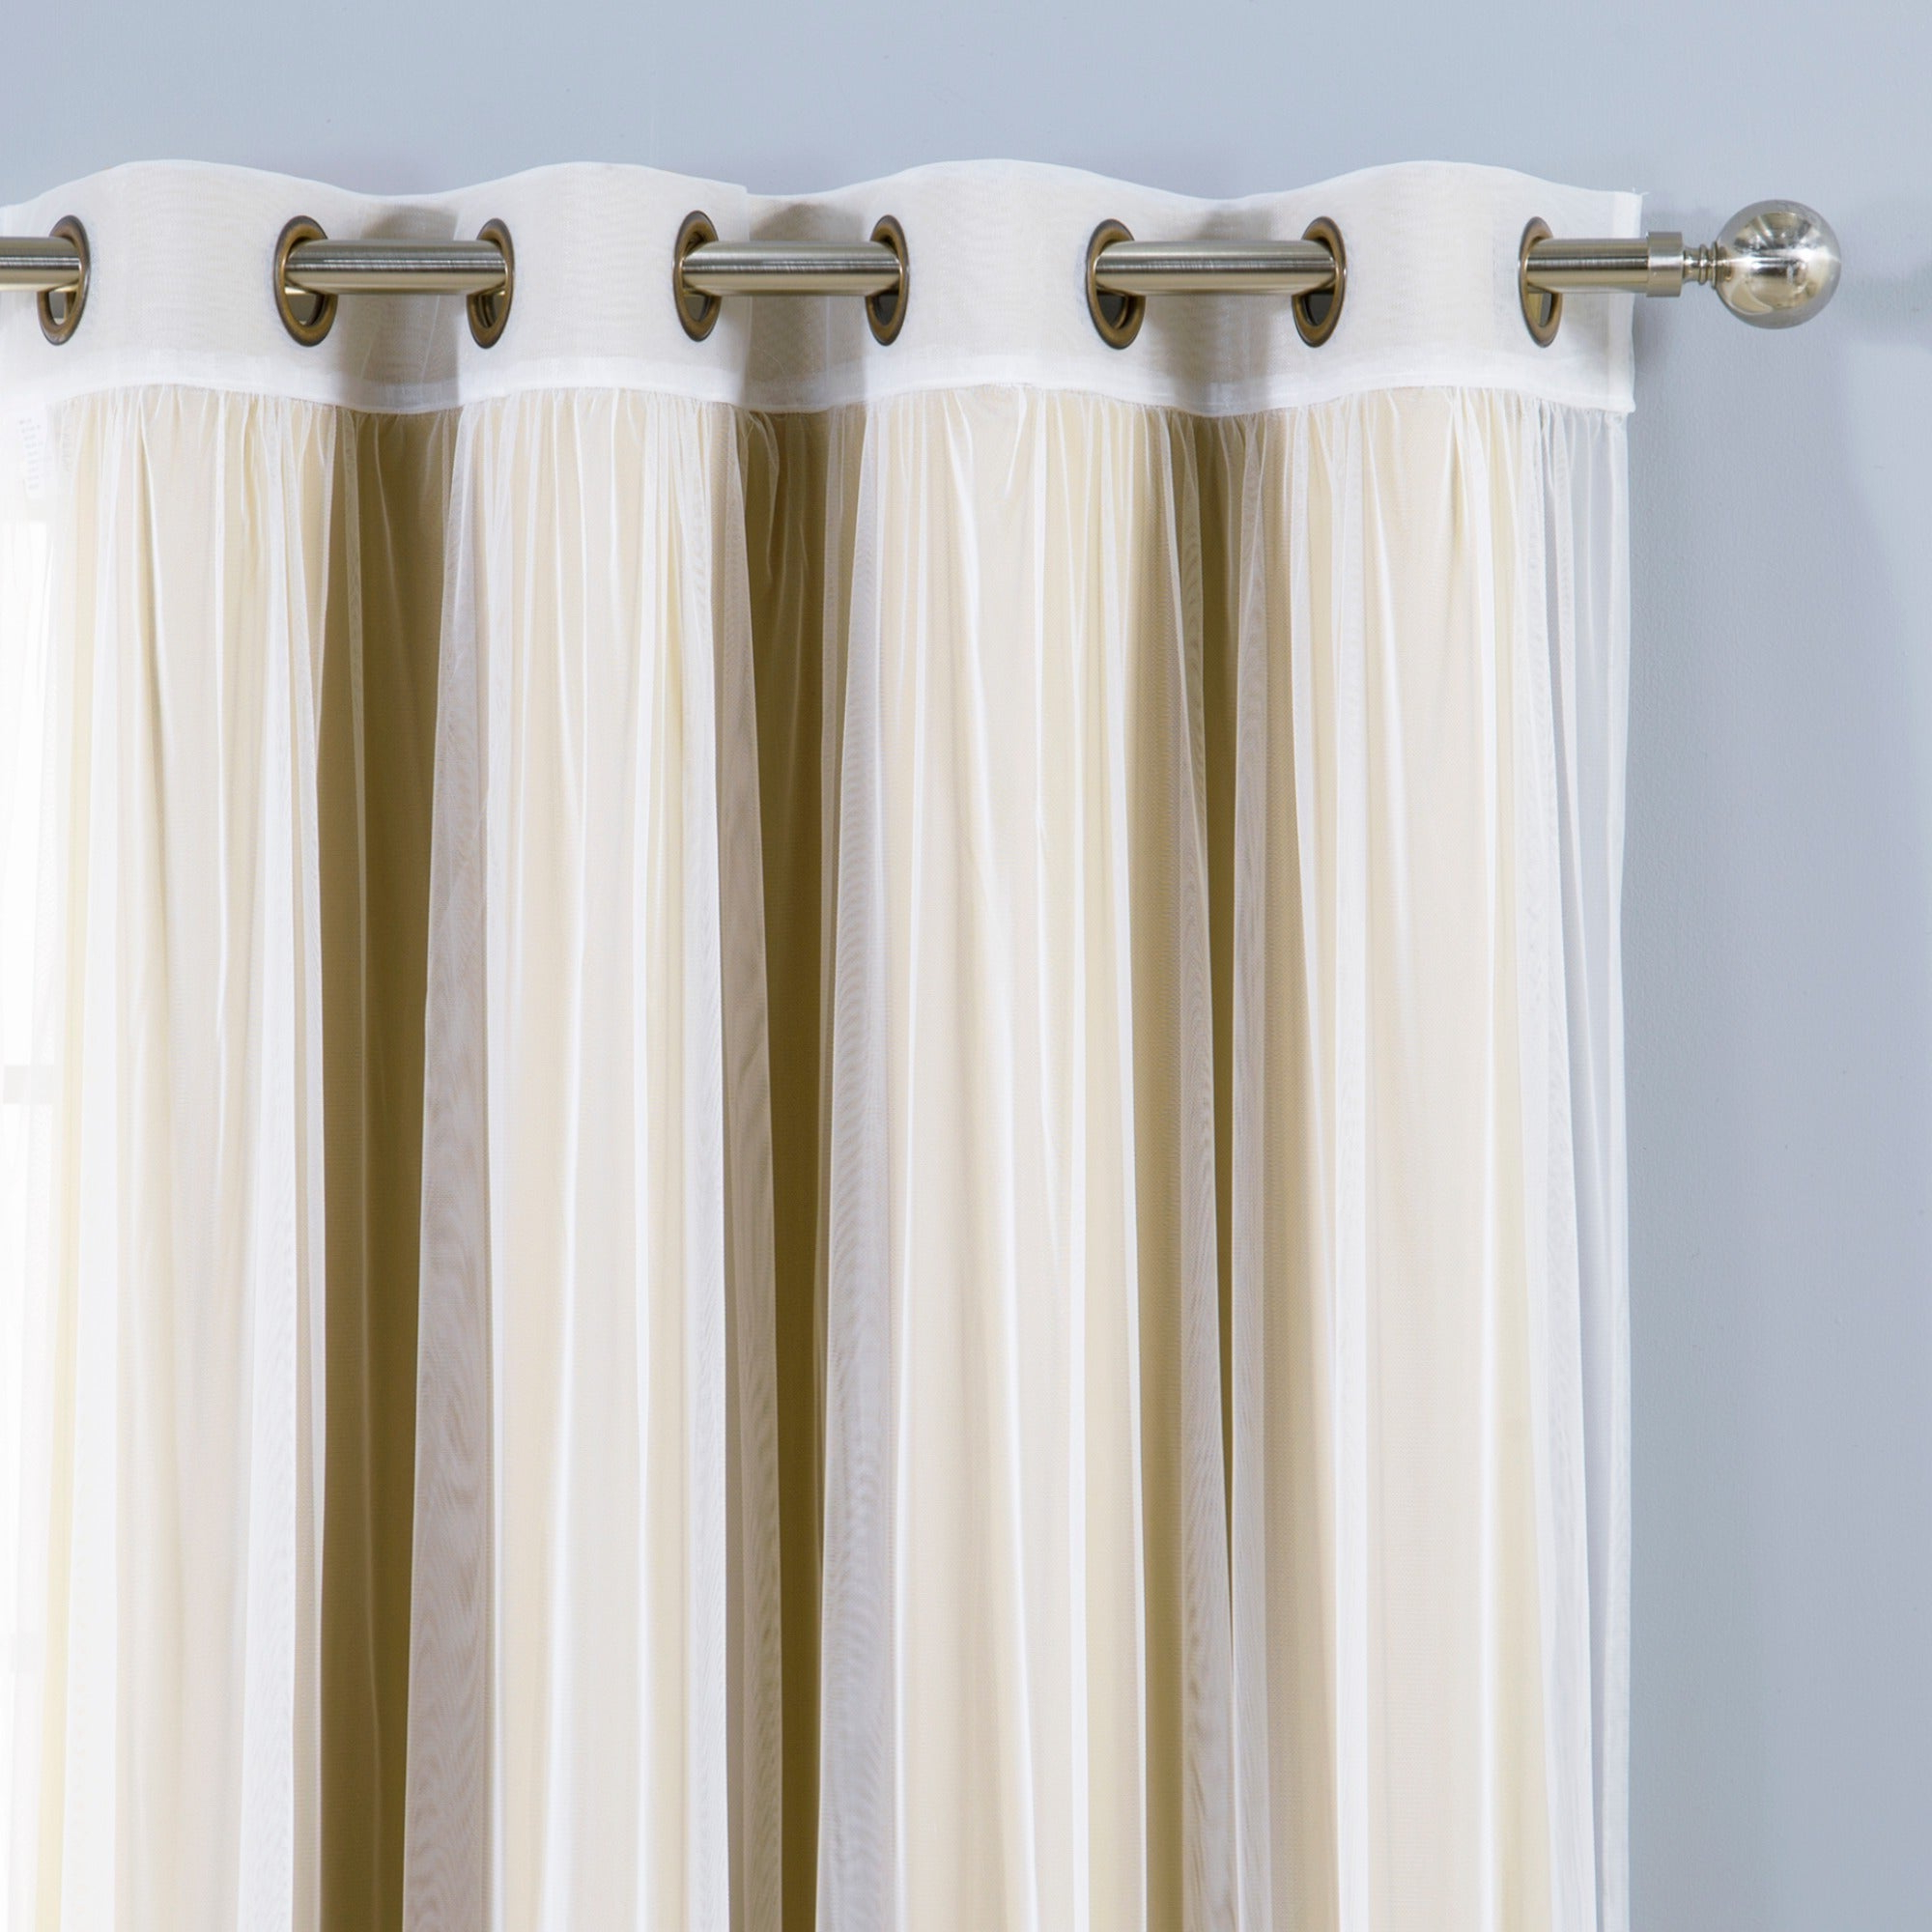 Aurora Home Mix & Match Blackout Tulle Lace Bronze Grommet 4 Piece Curtain Panel Set Within Preferred Mix & Match Blackout Tulle Lace Bronze Grommet Curtain Panel Sets (View 6 of 20)